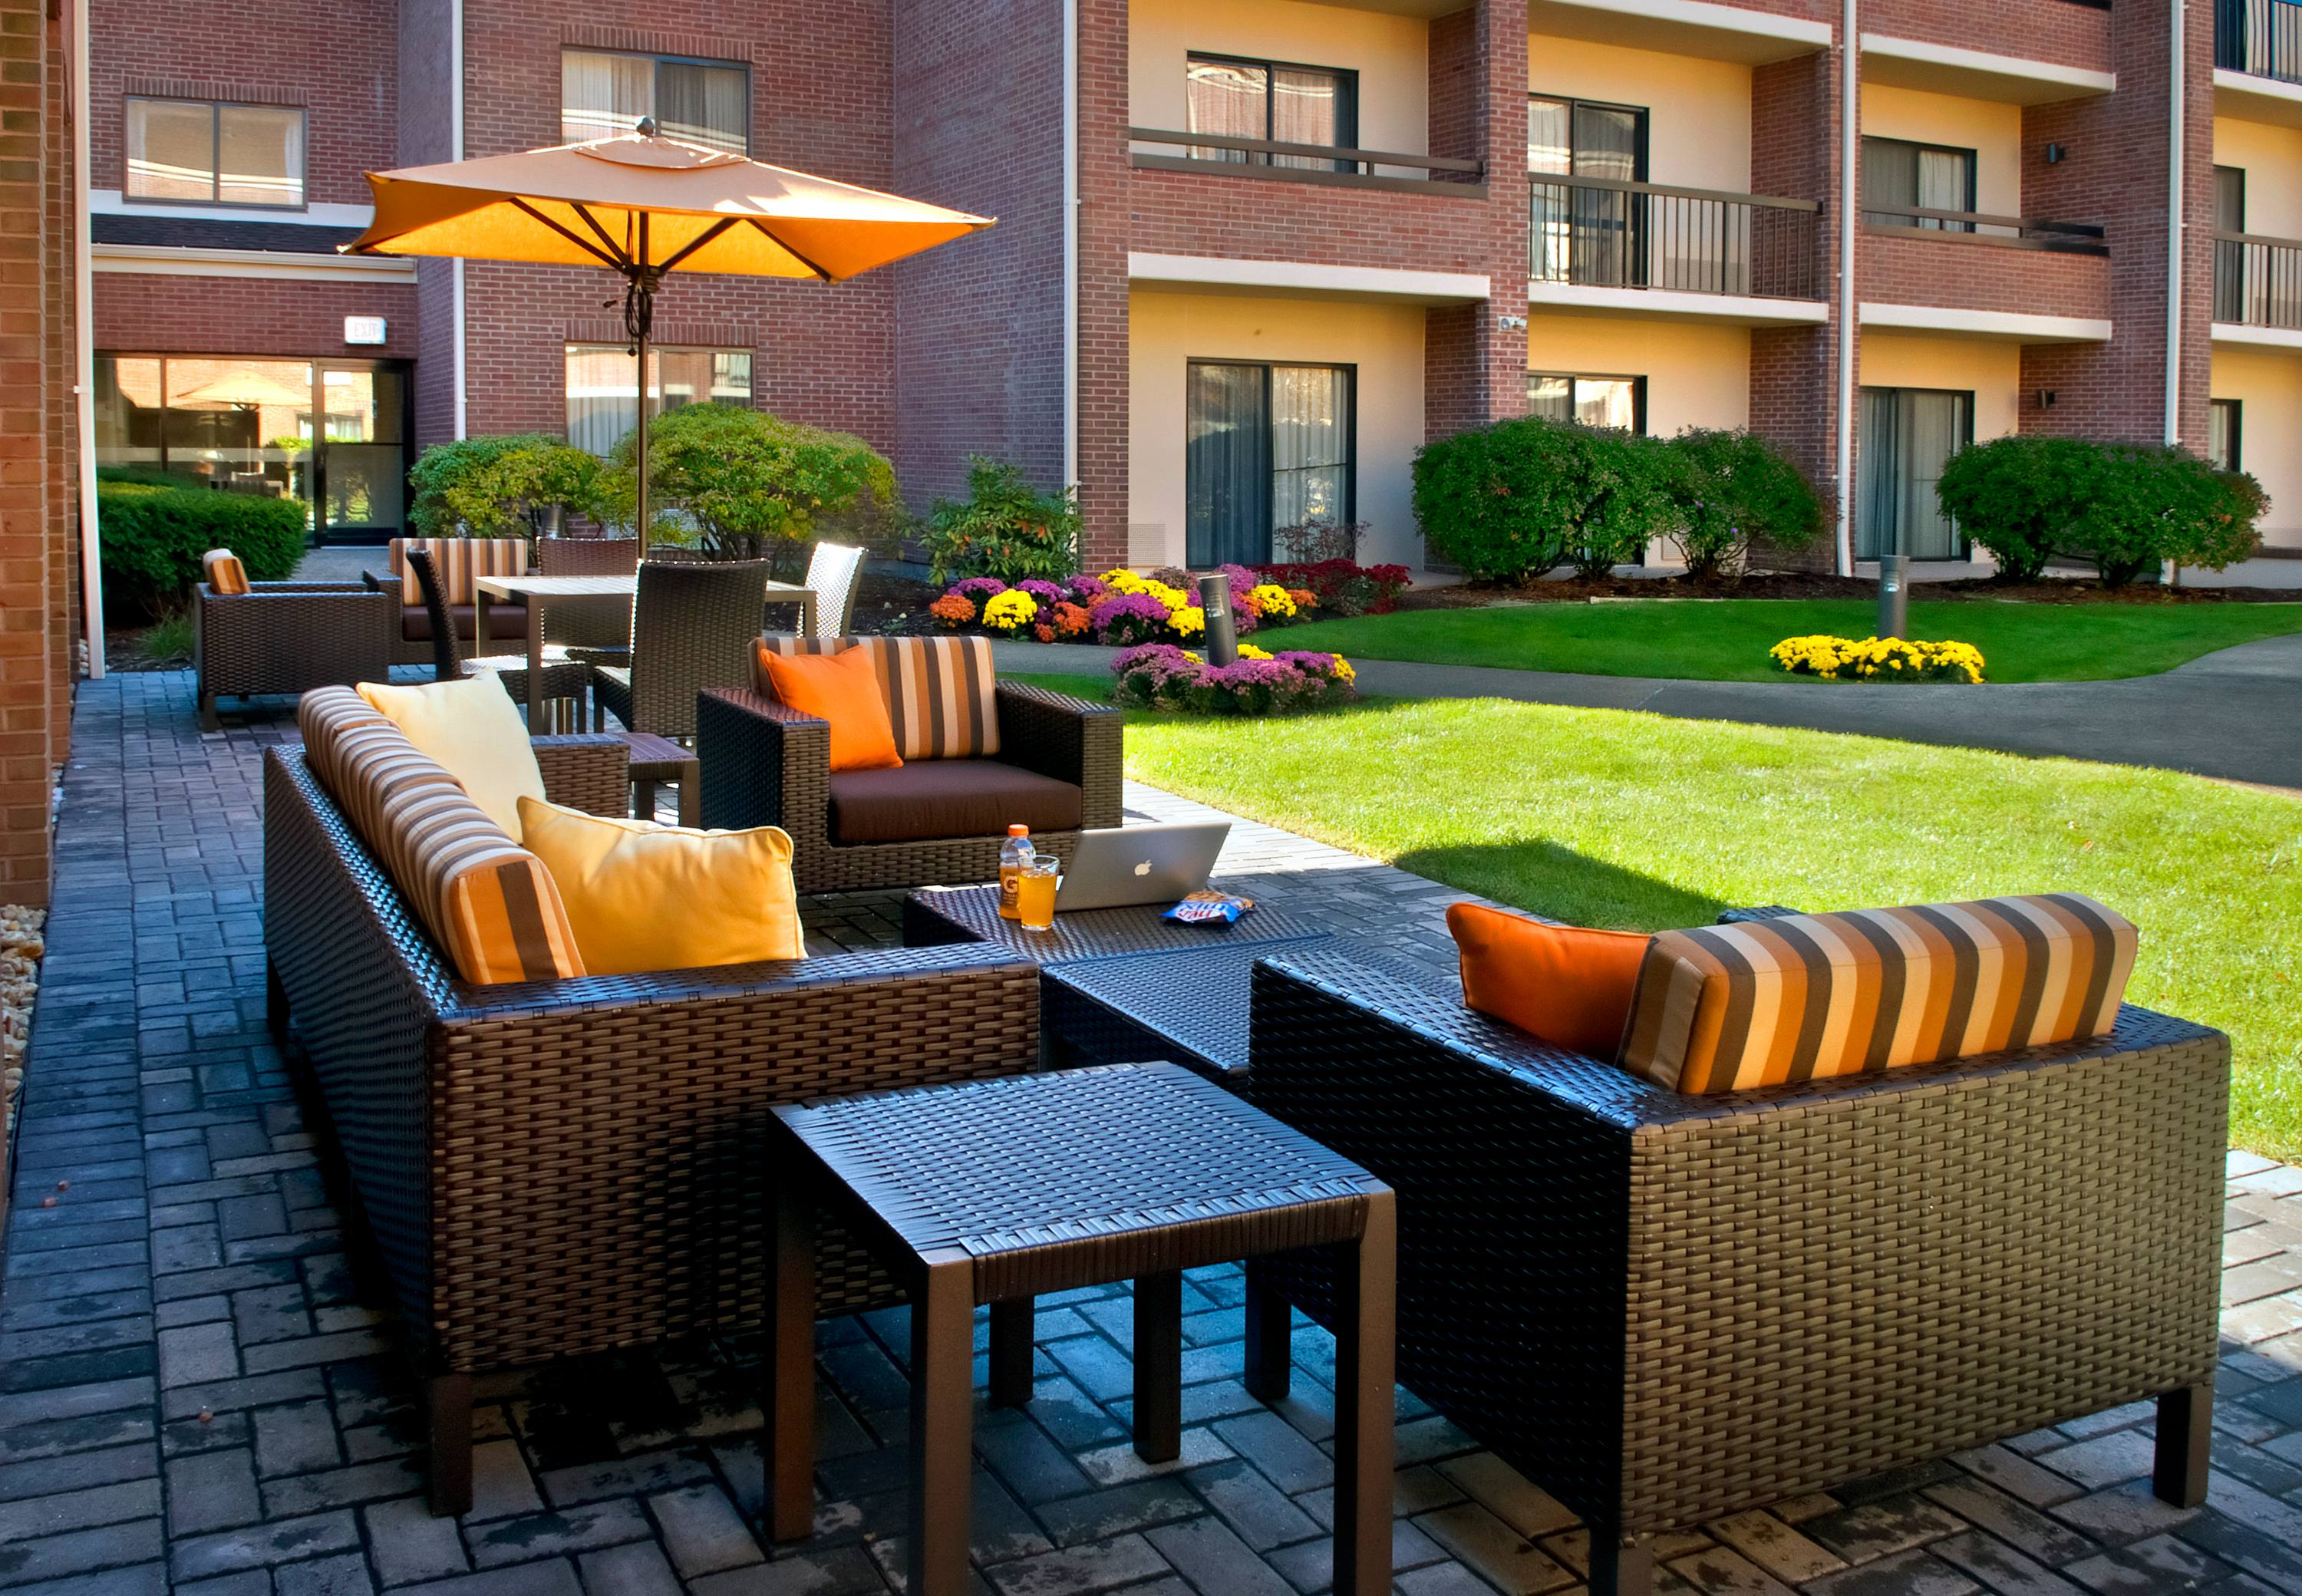 Courtyard by Marriott Boston Foxborough/Mansfield image 19